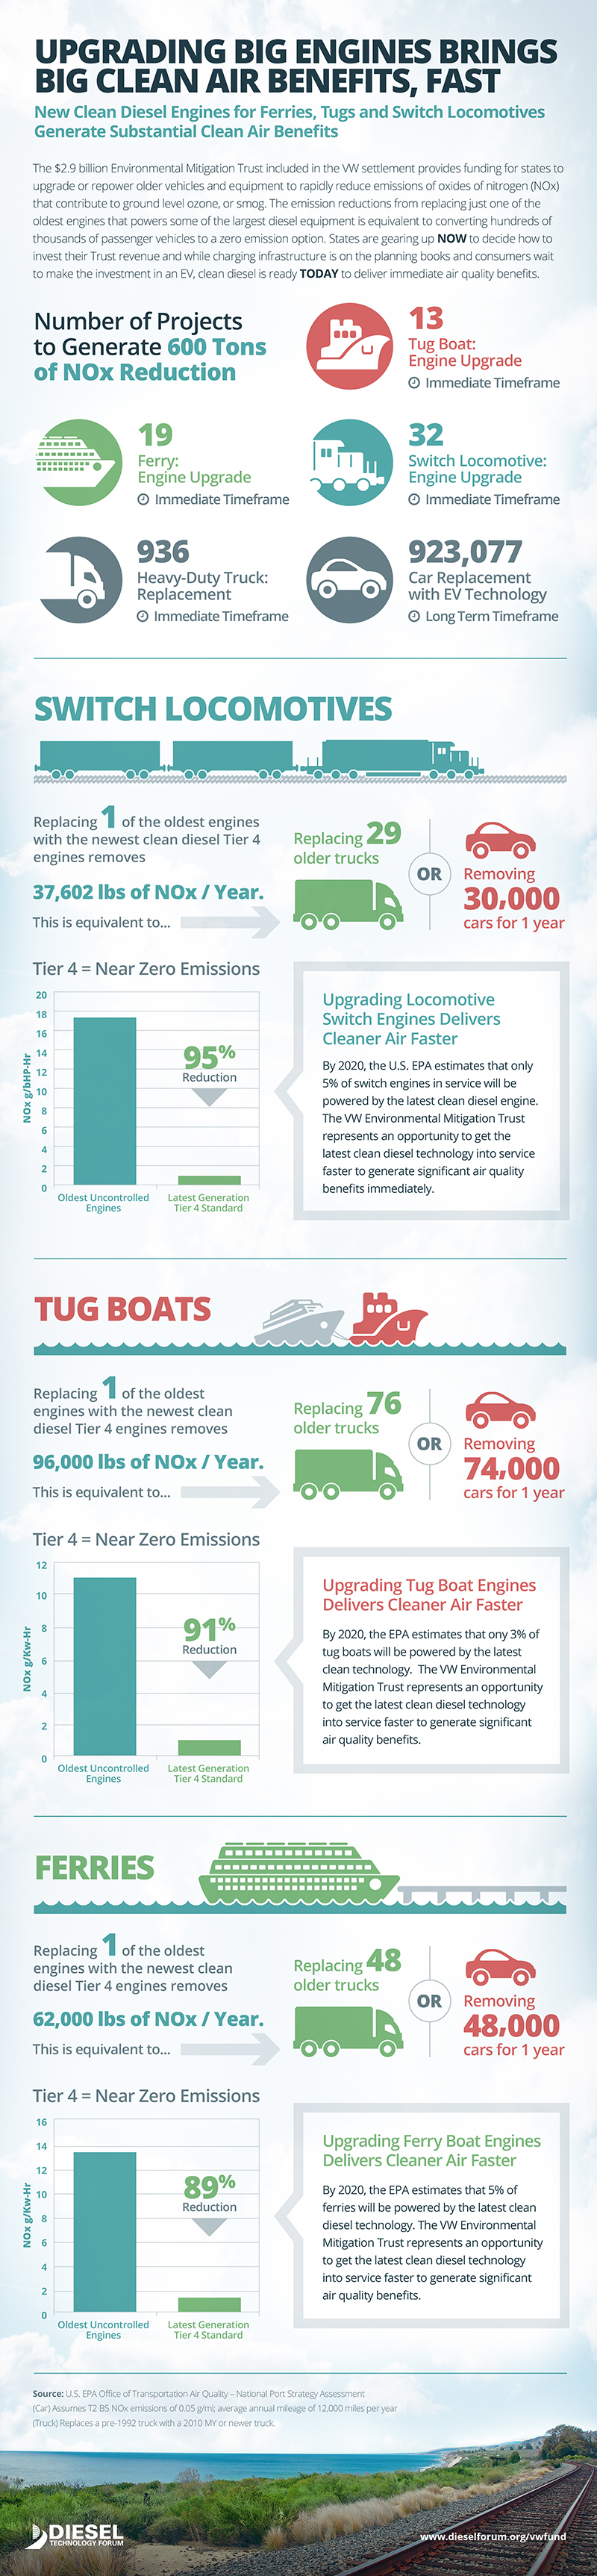 VW Big Engine Infographic